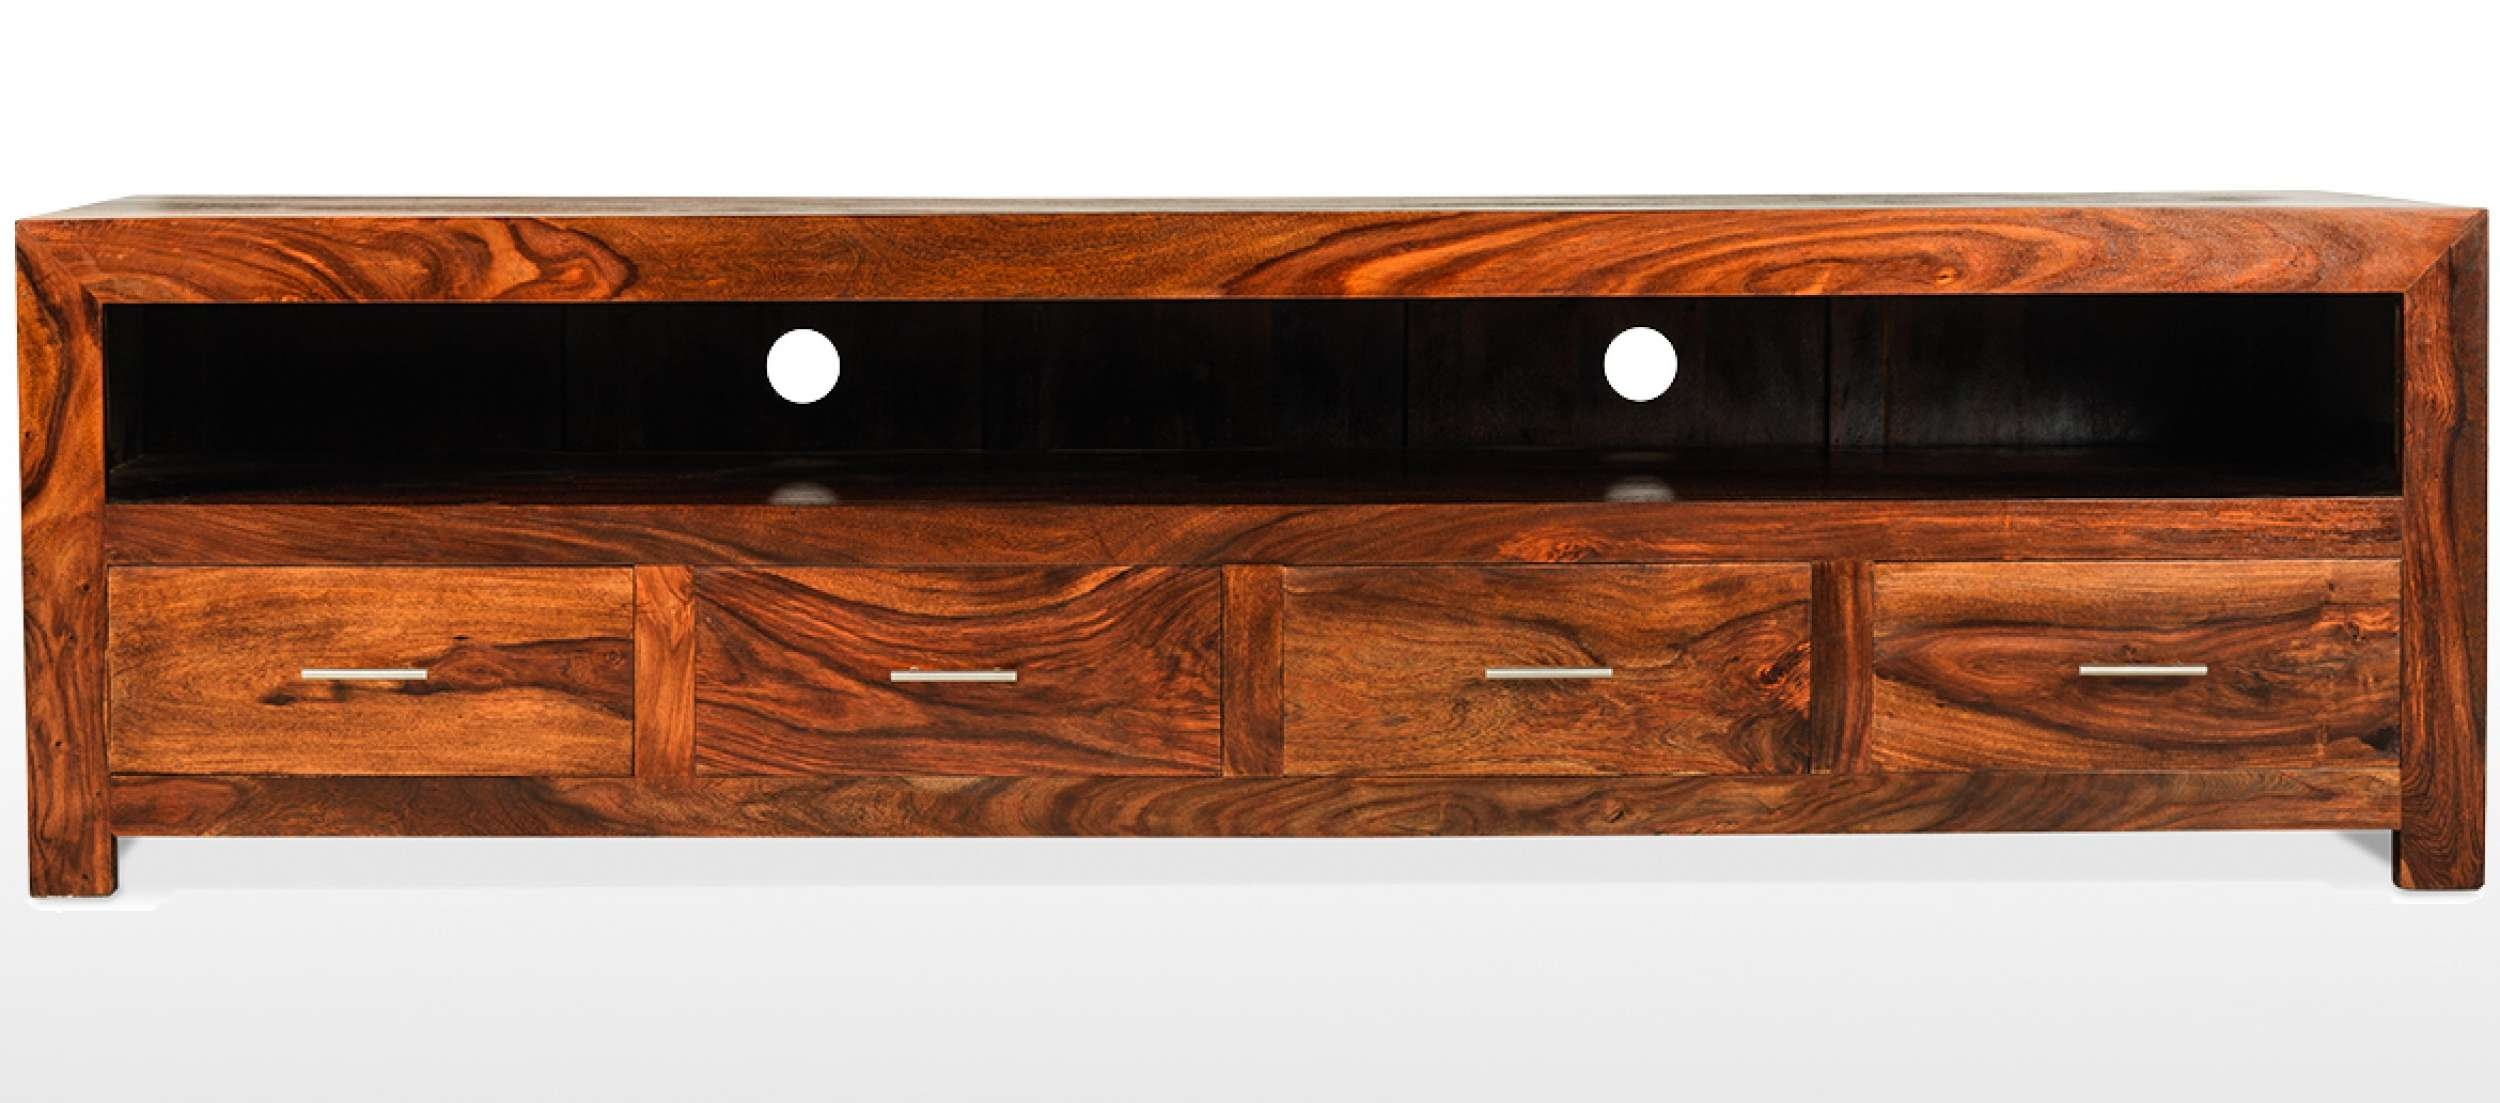 Cube Sheesham Long Plasma Tv Cabinet | Quercus Living With Regard To Sheesham Tv Stands (View 4 of 15)